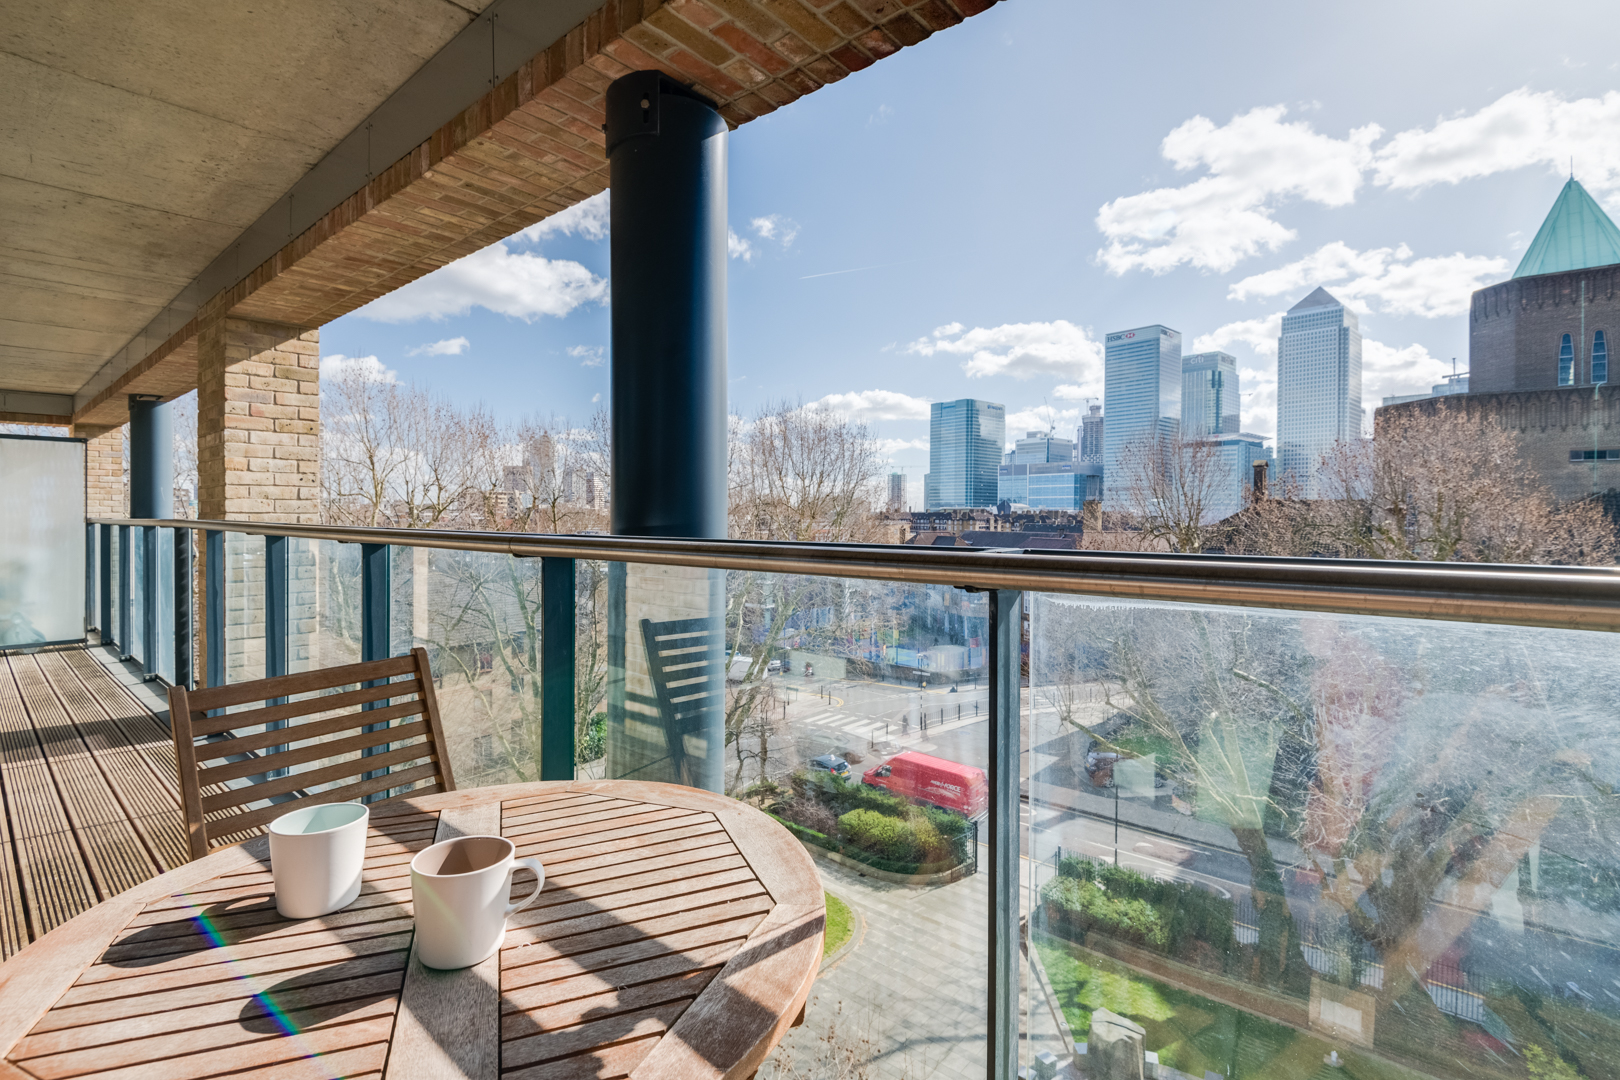 12---20190310---pkp---utdm---casson-apartments---balcony-and-views---1---low-res_47426934282_o.jpg